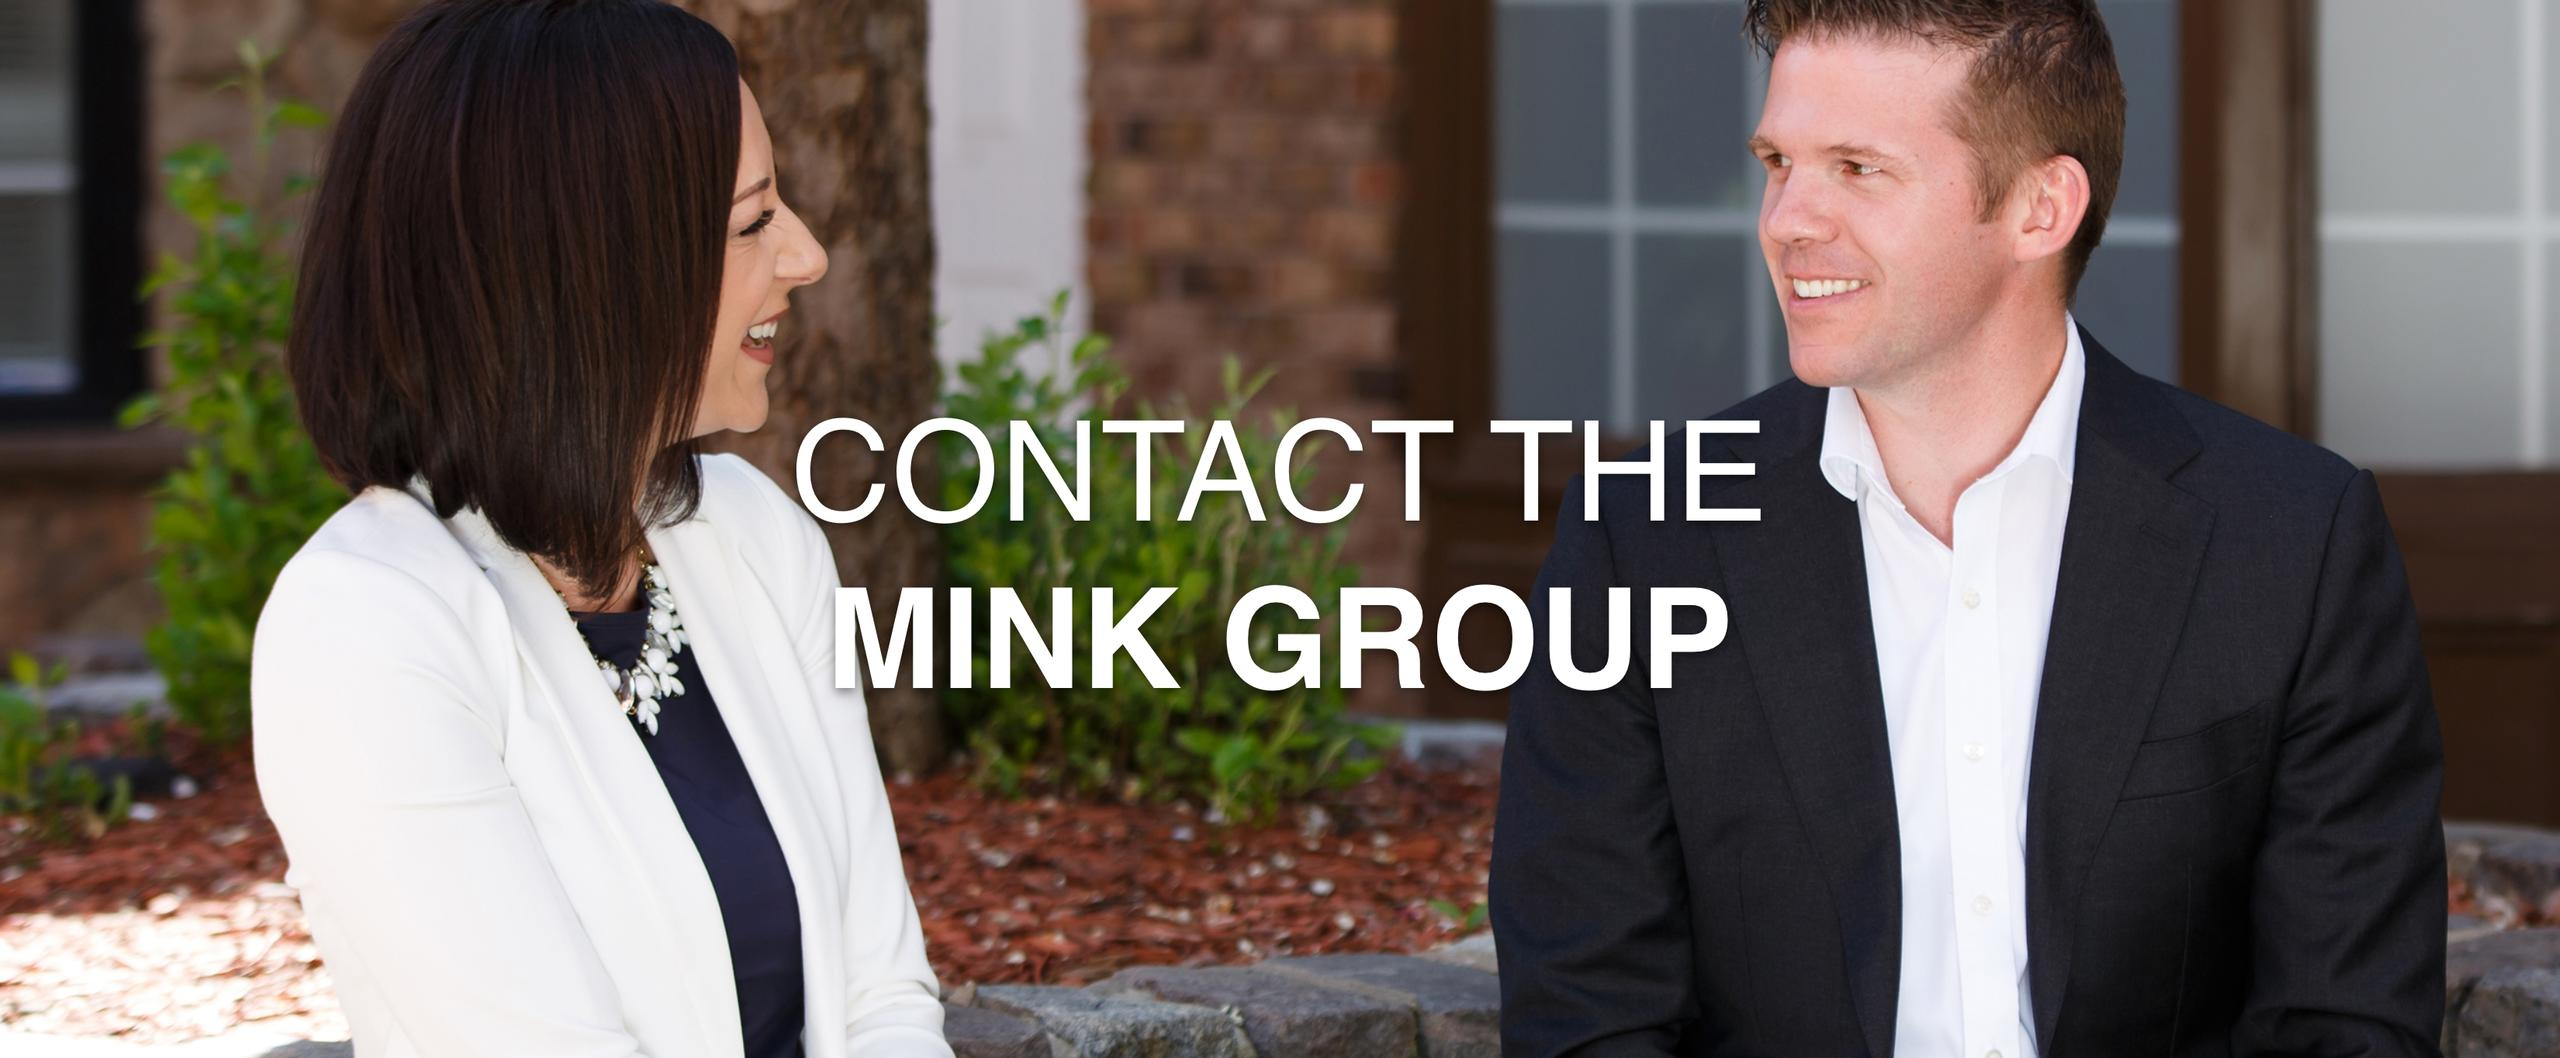 Contact the Mink Group